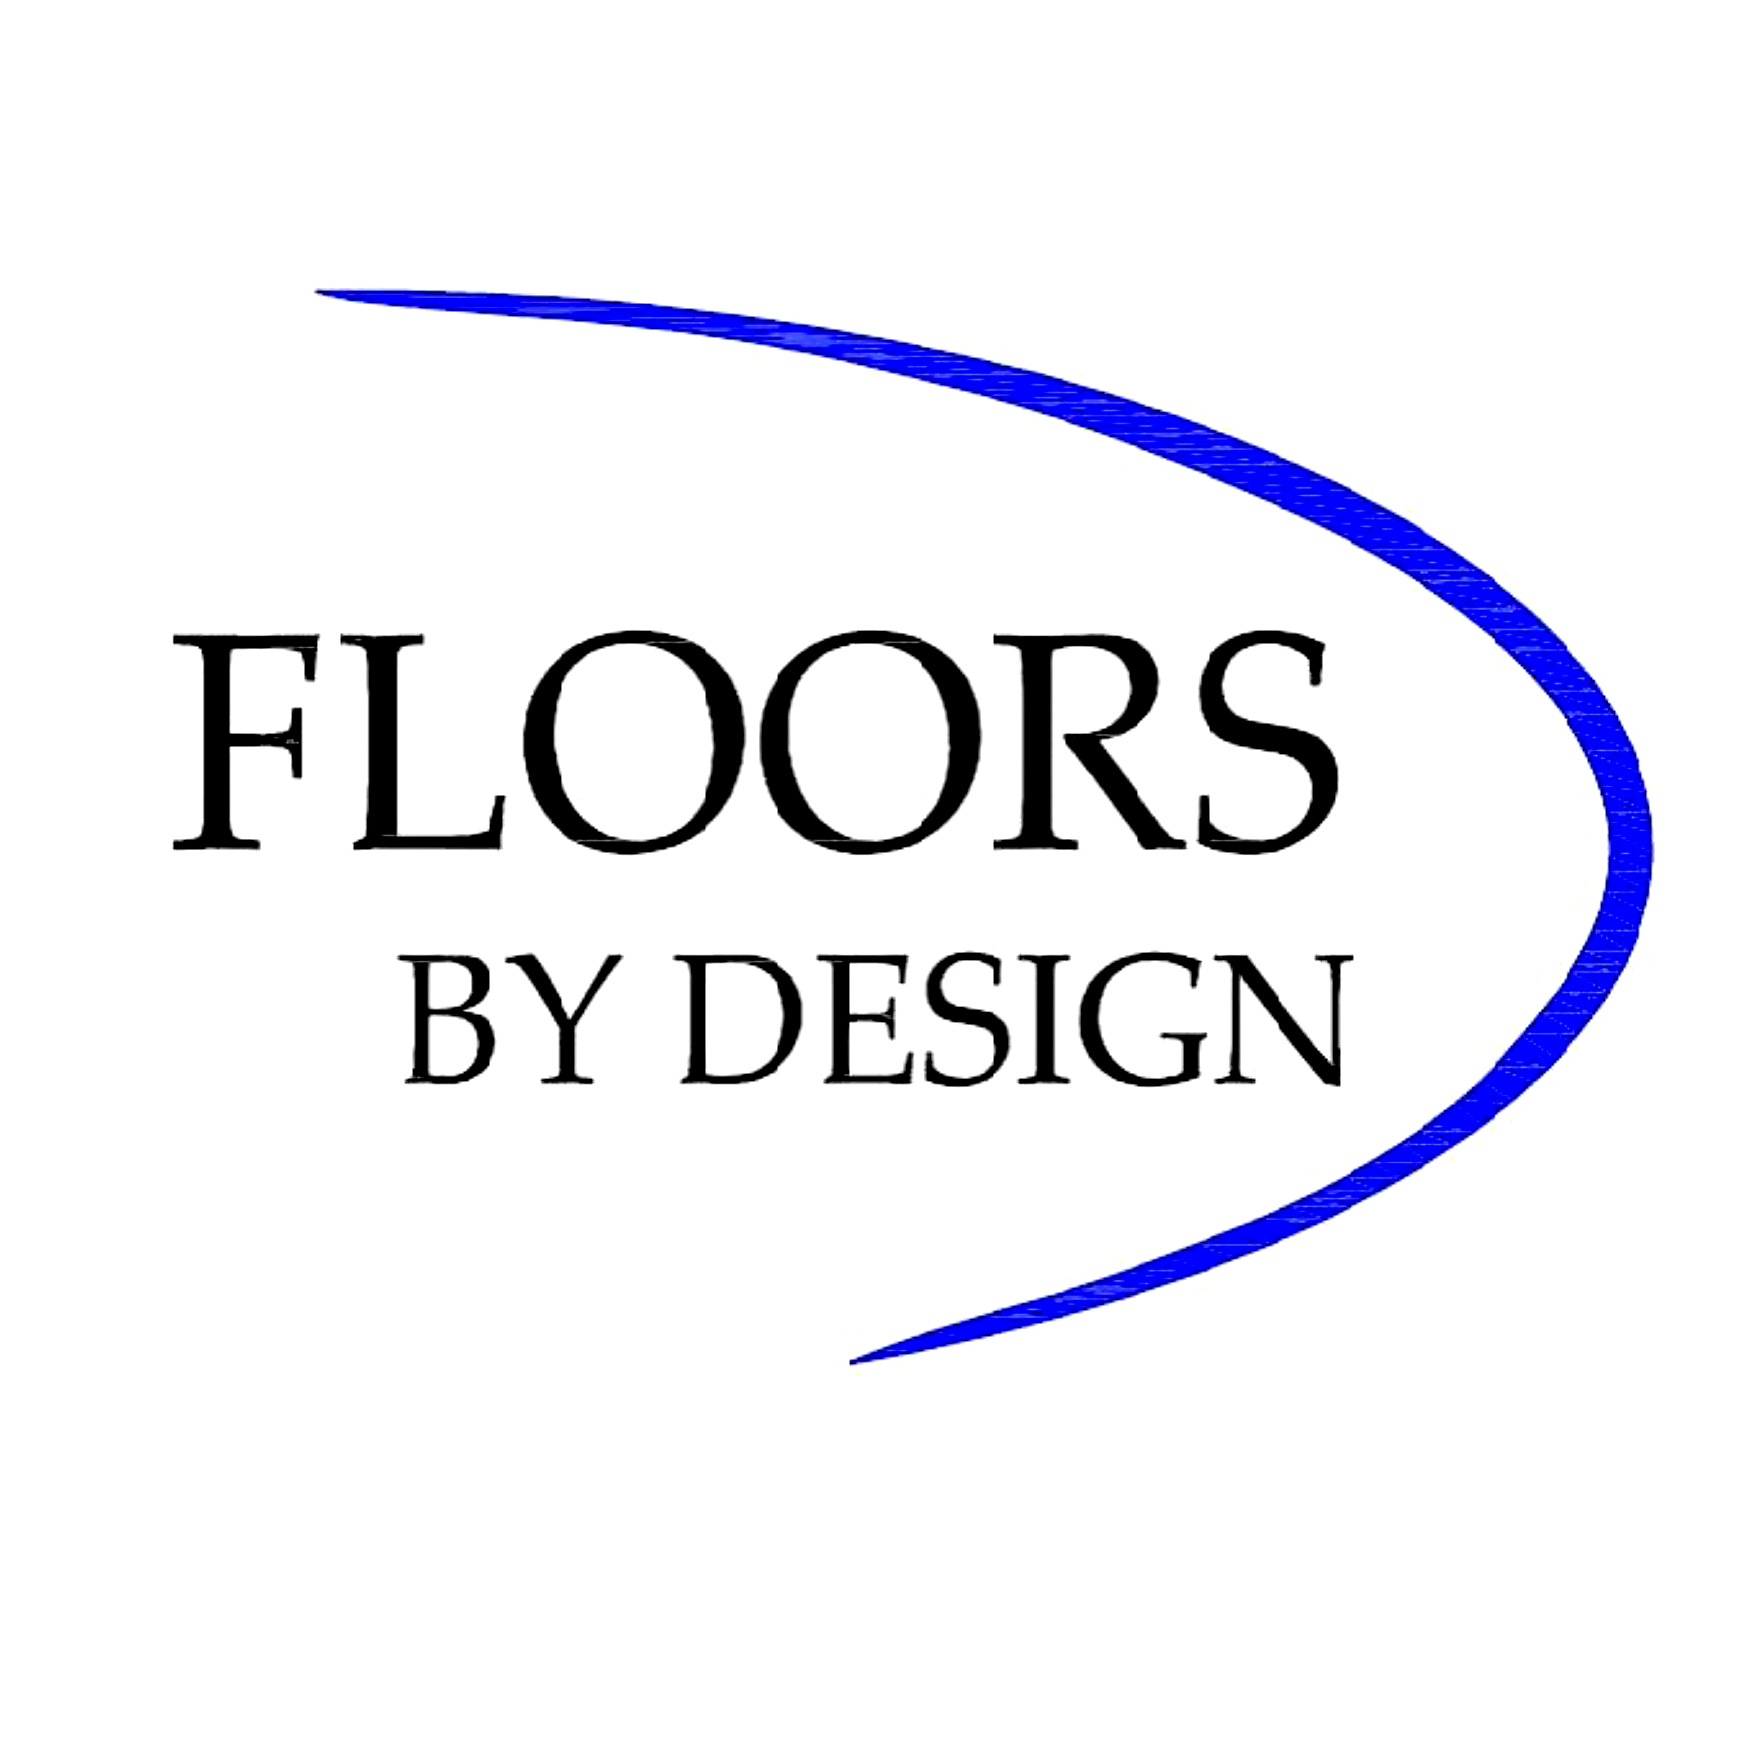 Floors by Design